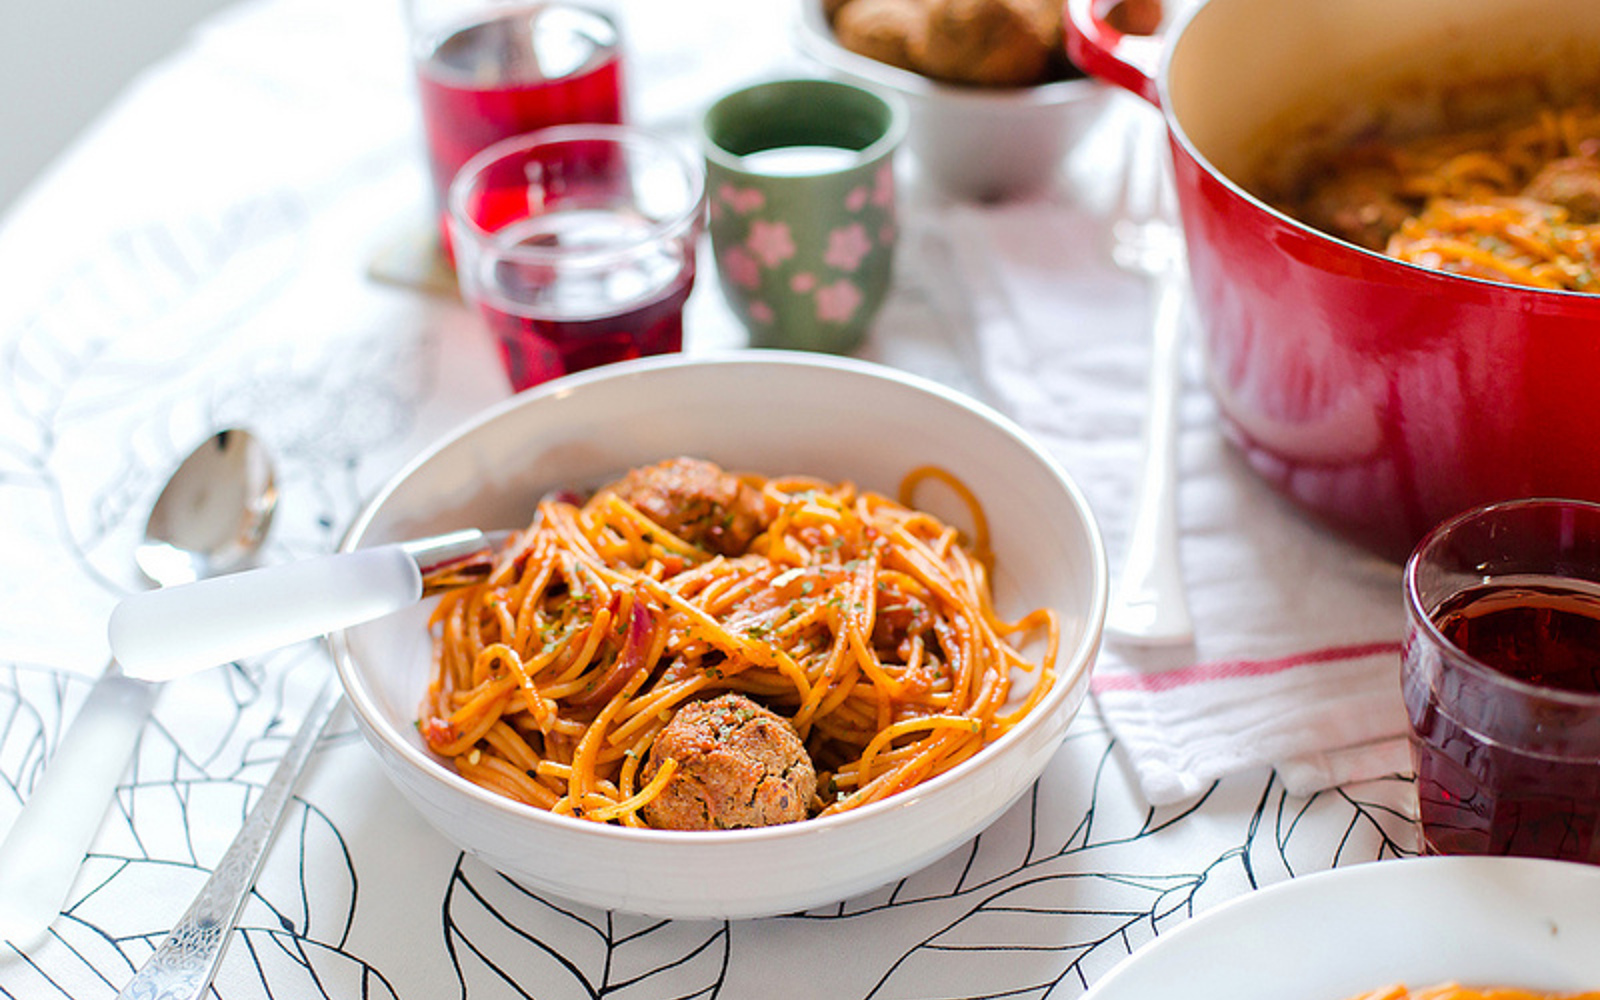 Vegan Spaghetti With Black-Eyed Pea 'Meatballs'